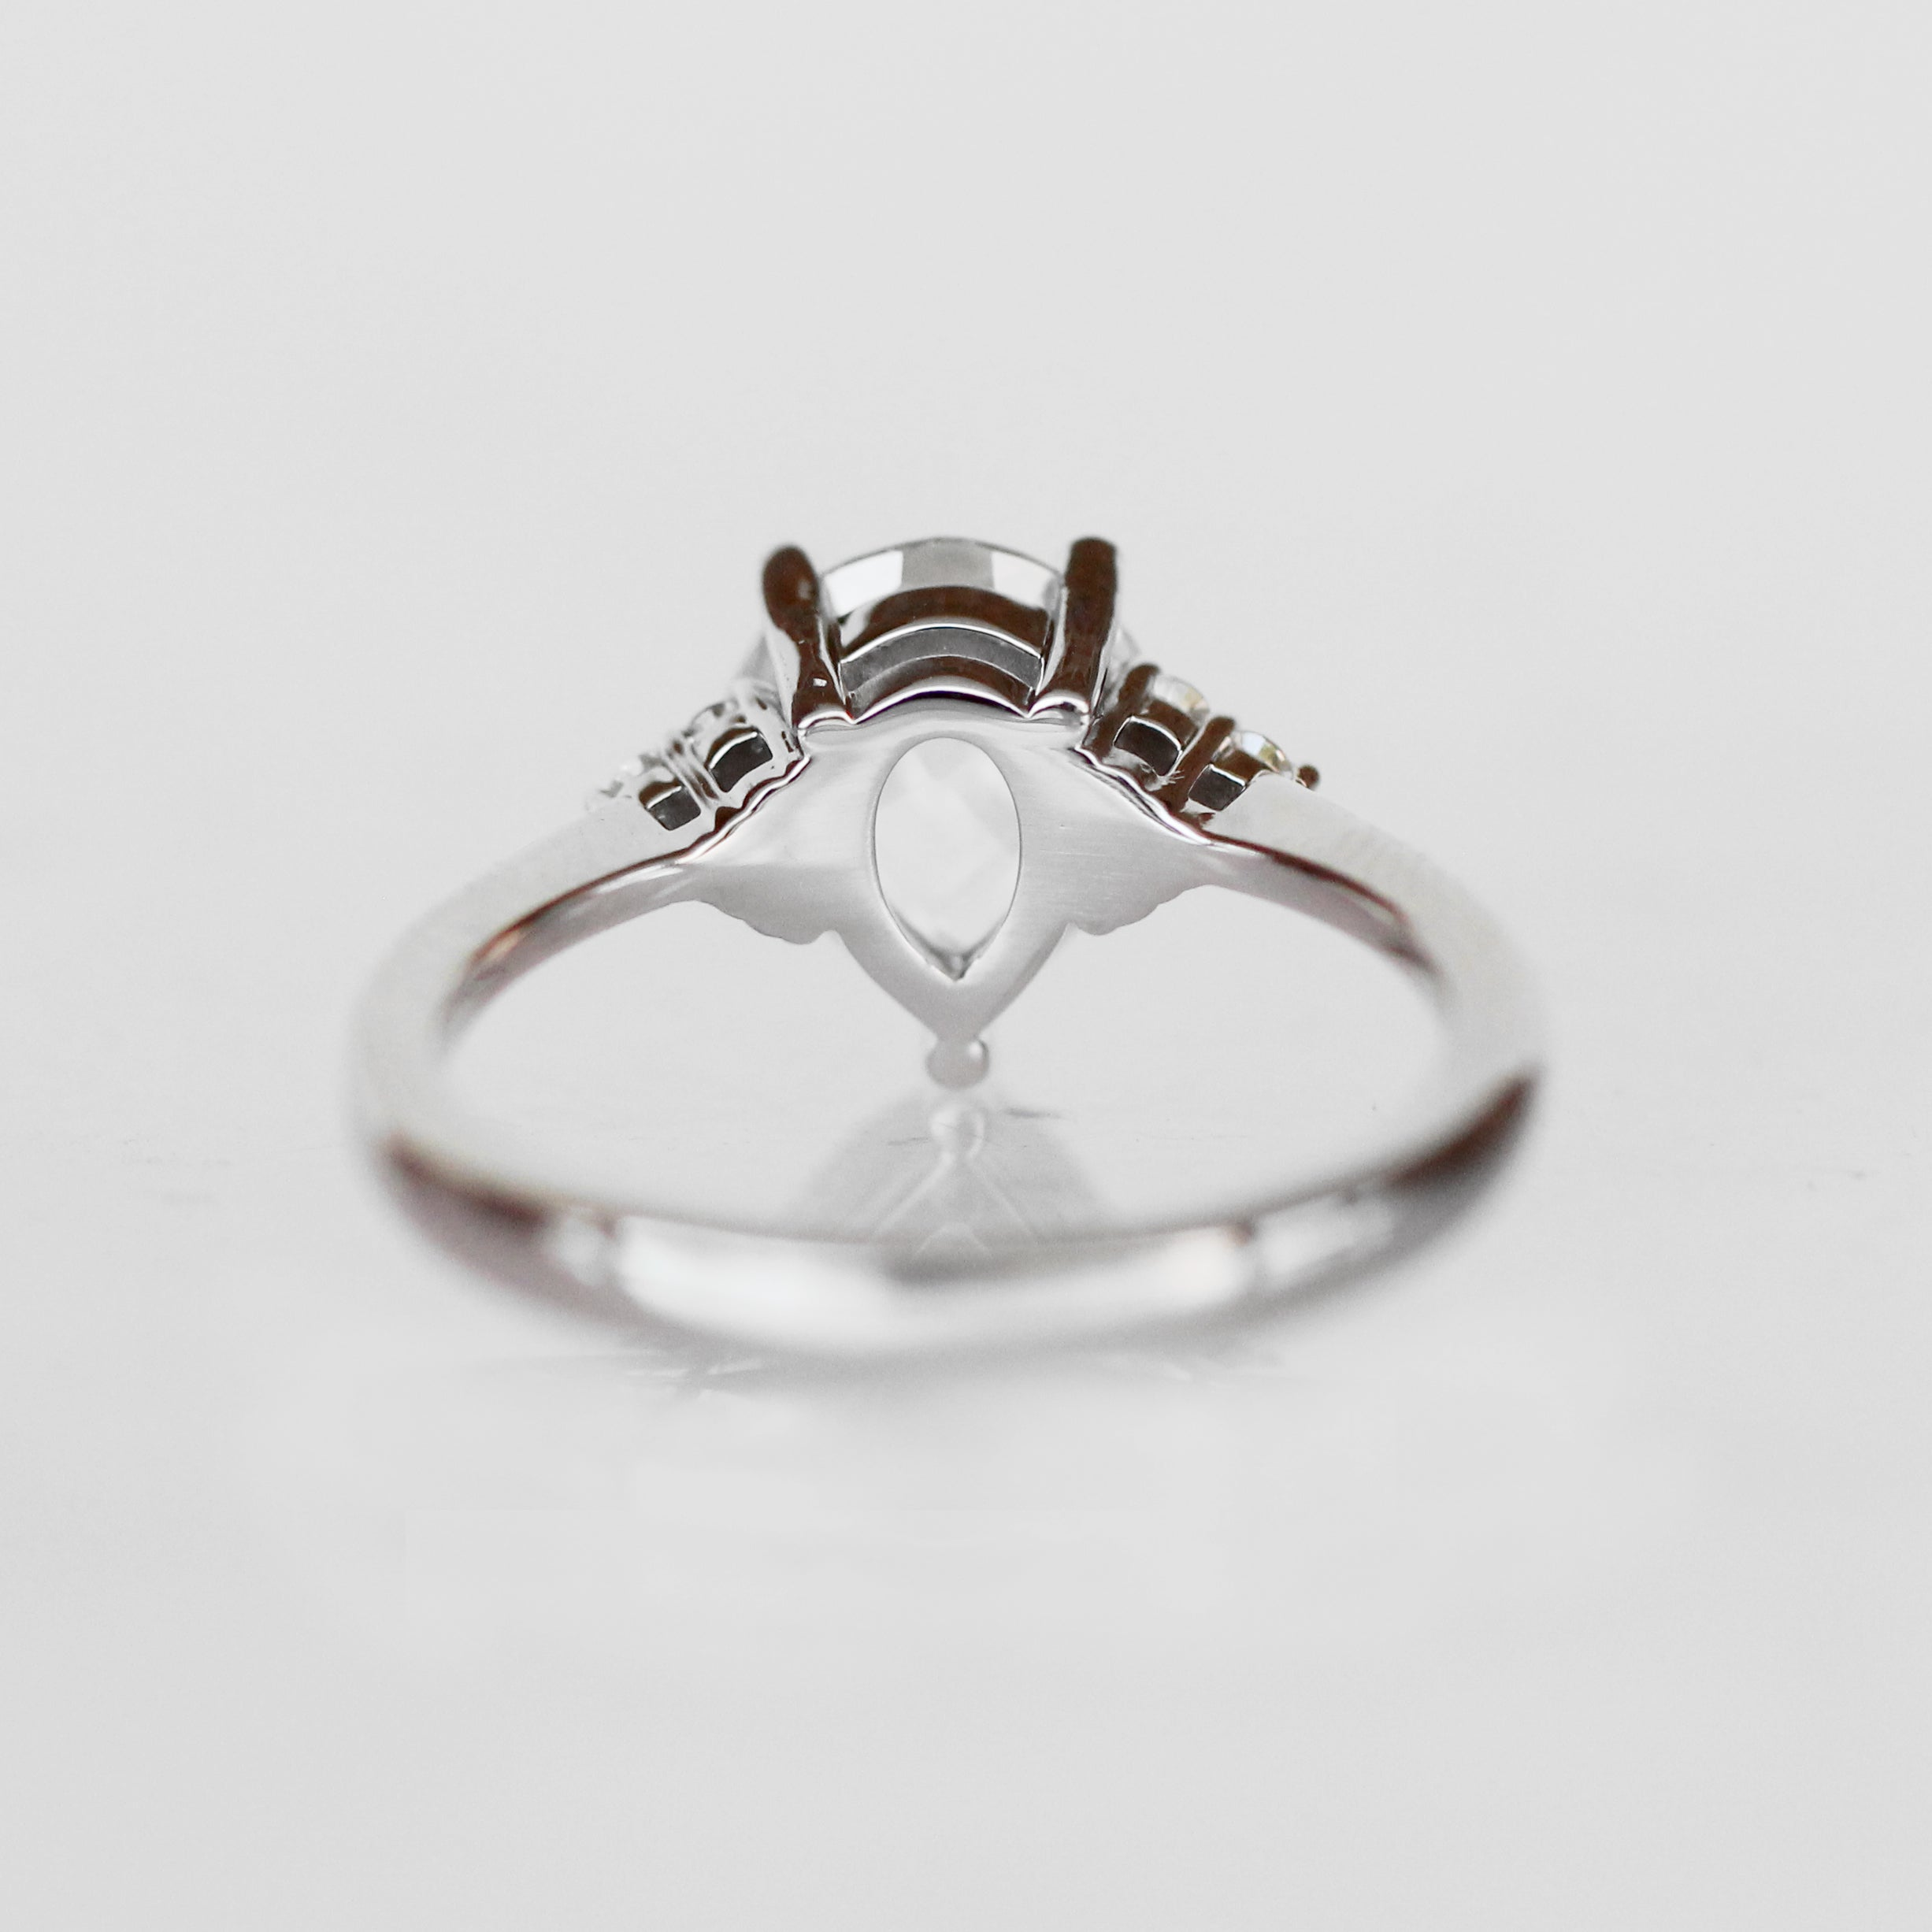 Imogene Ring with a Rose Cut Pear Moissanite in 14k White Gold - Ready to Size and Ship - Celestial Diamonds ® by Midwinter Co.